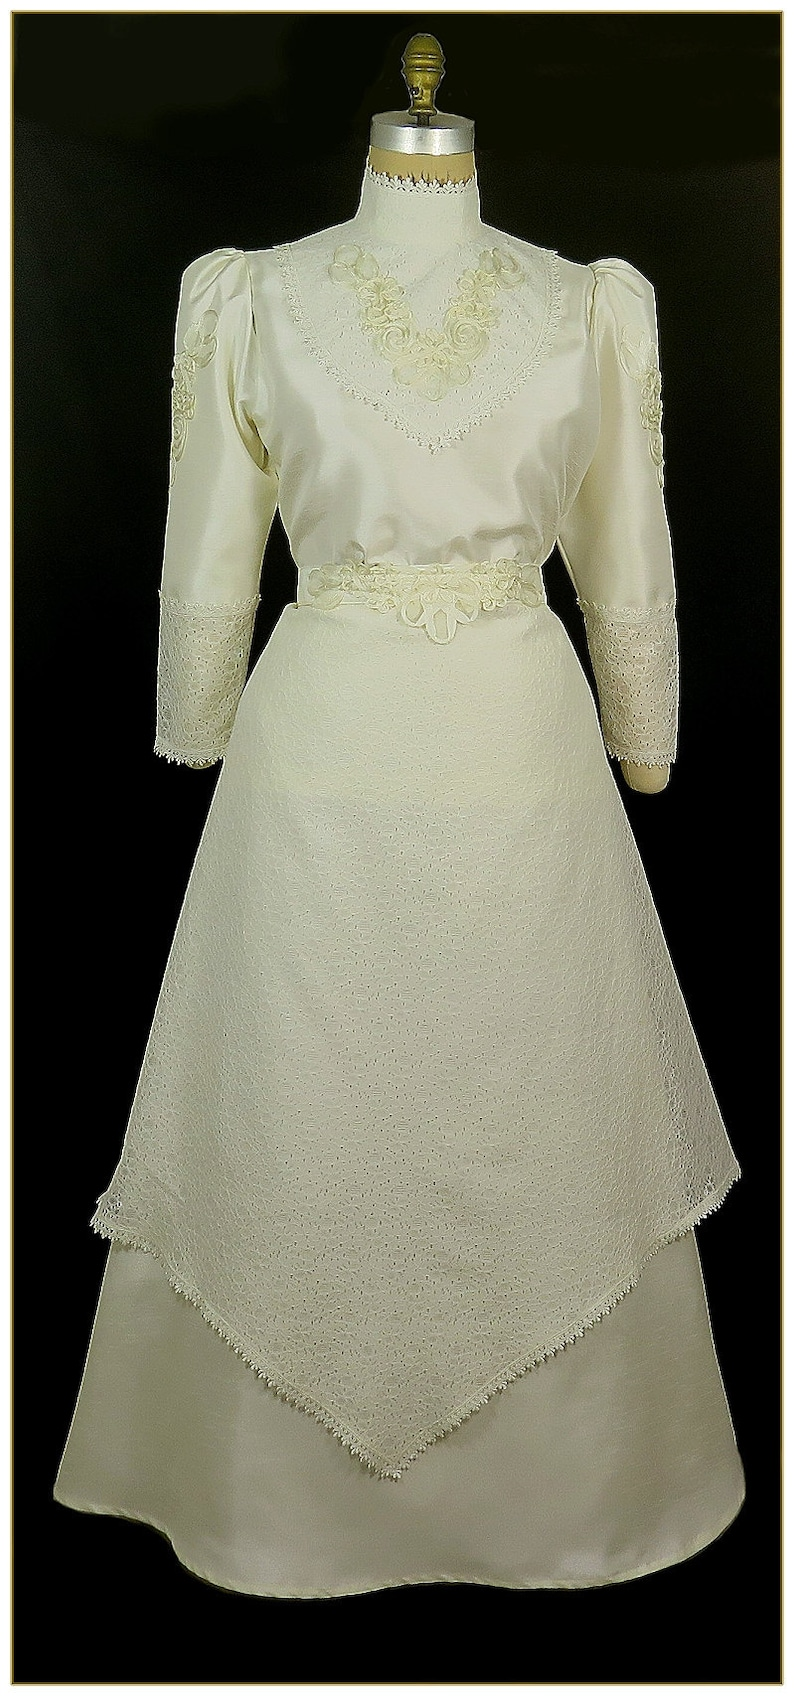 Old Fashioned Dresses | Old Dress Styles Antique White Shantung and Lace Skirt $92.00 AT vintagedancer.com